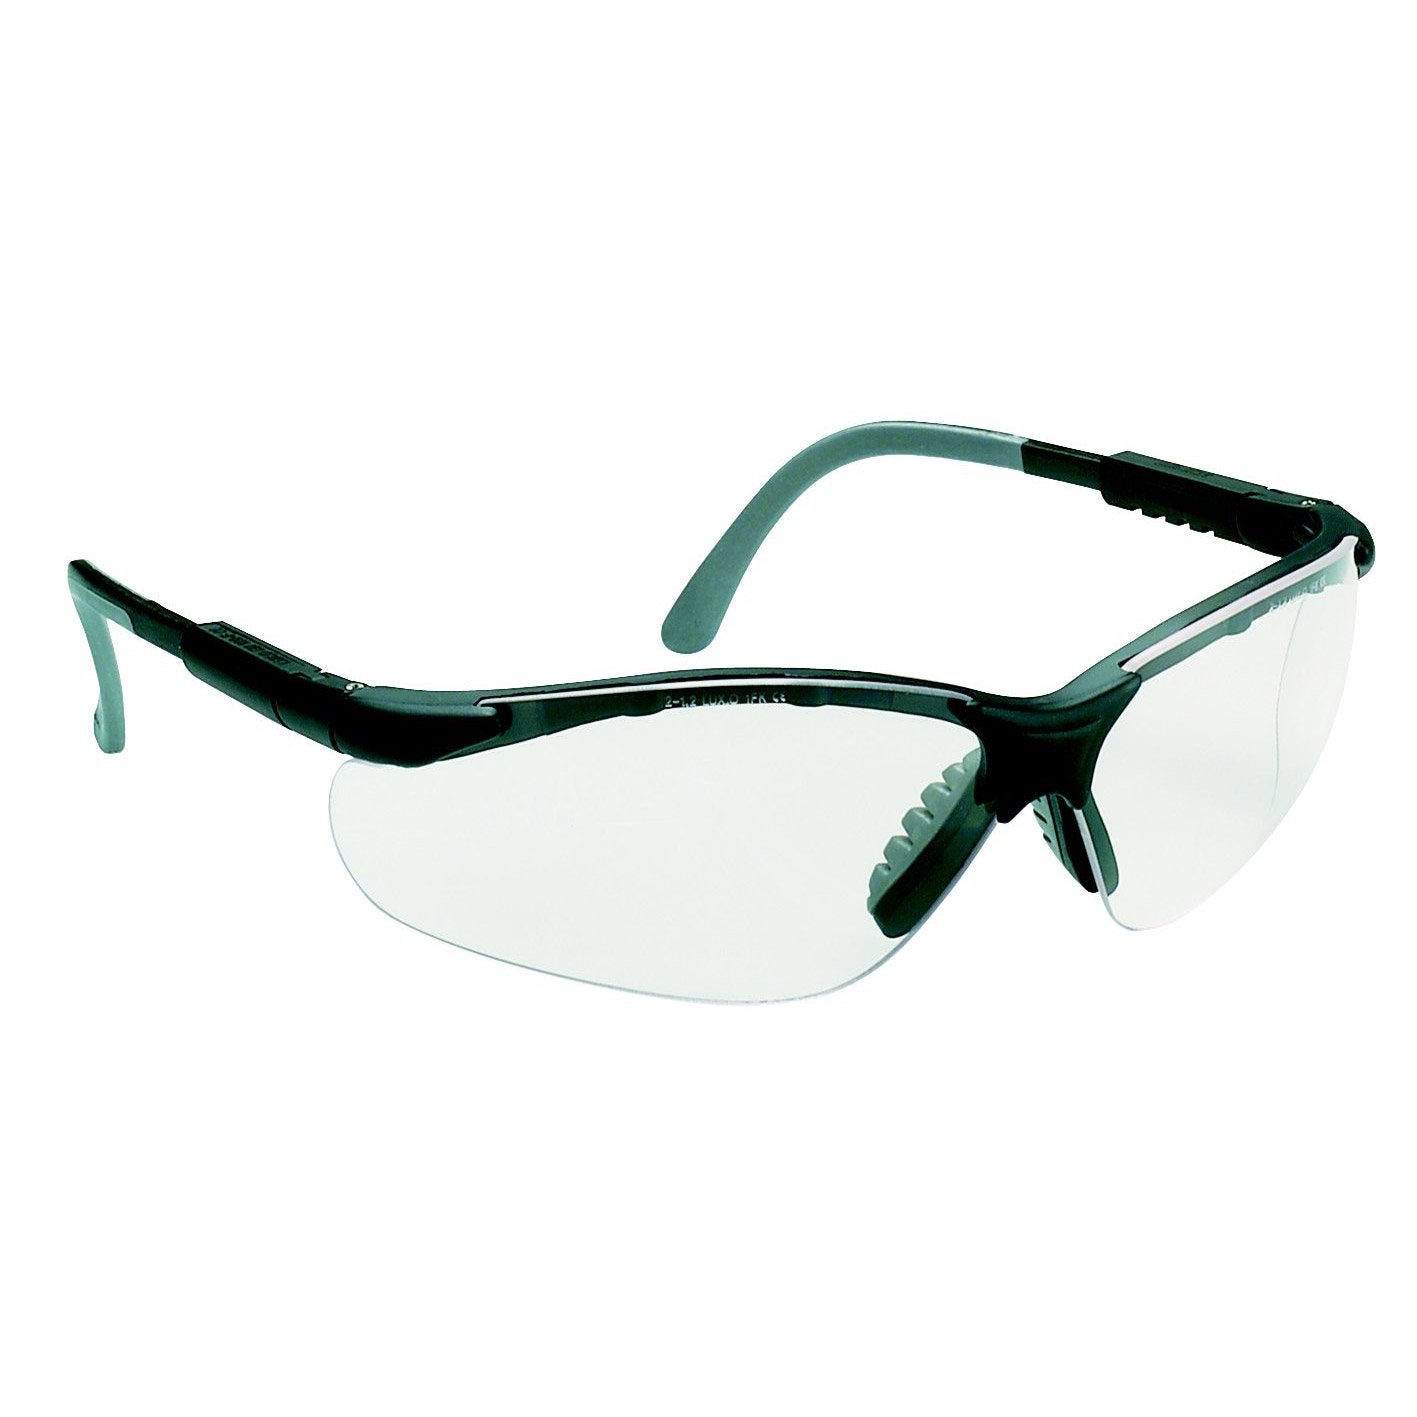 lunettes de protection dexter lm60530 verre incolore leroy merlin. Black Bedroom Furniture Sets. Home Design Ideas